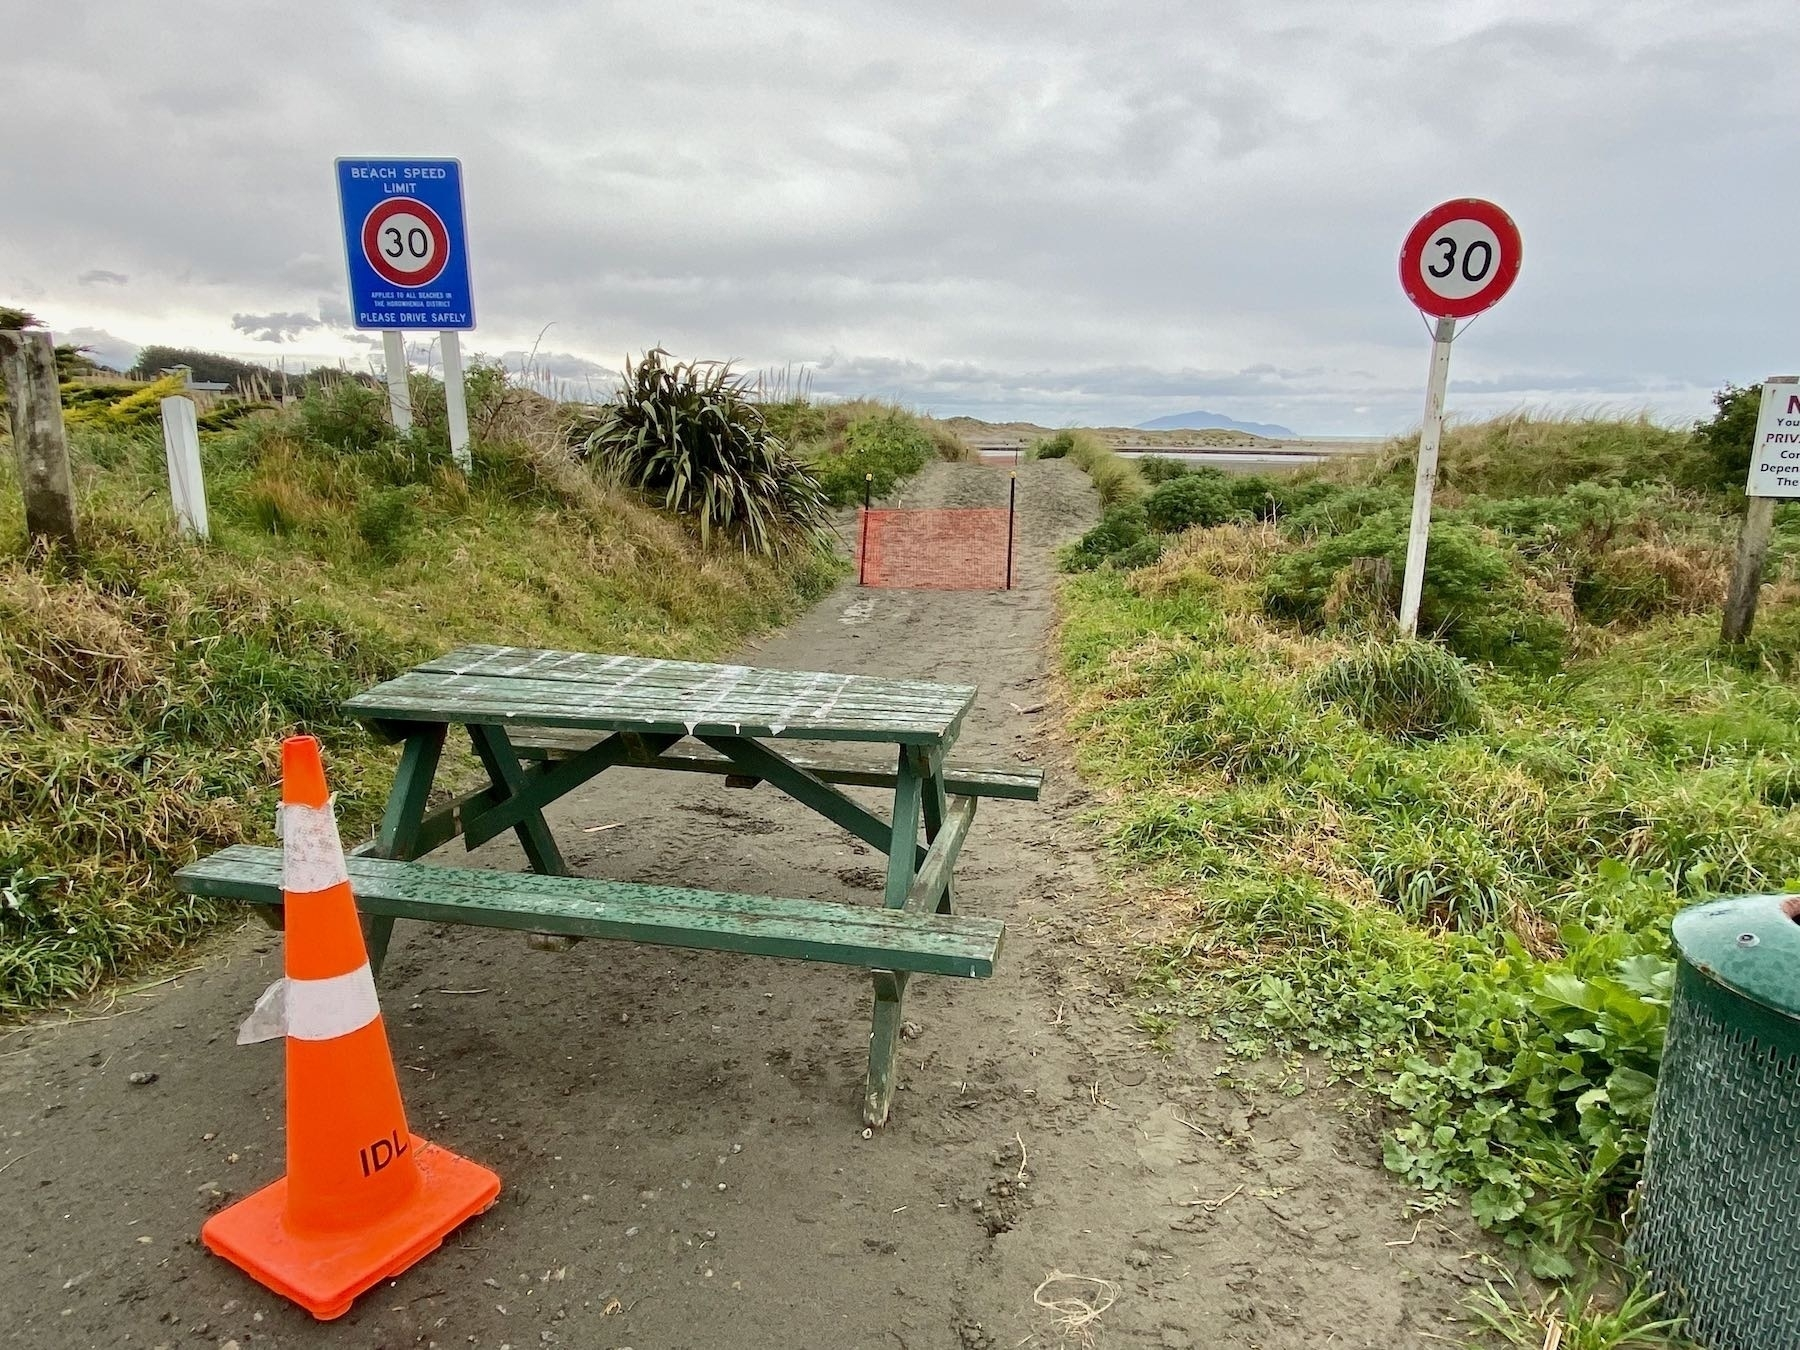 Picnic table, cone and temporary fence across the beach access road.